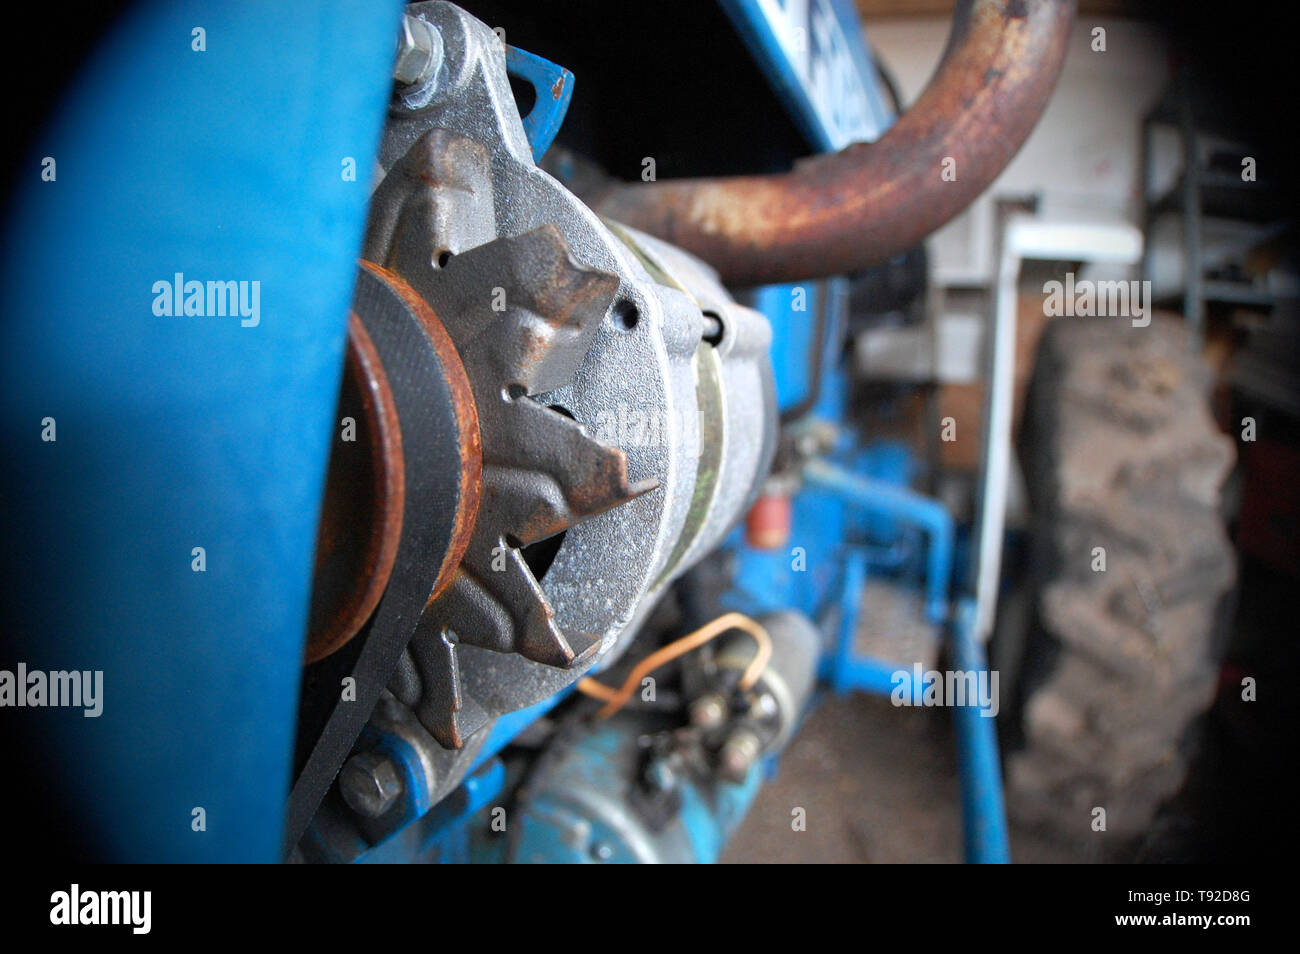 Extreme close-up shot of the gearshift on a tractor Stock